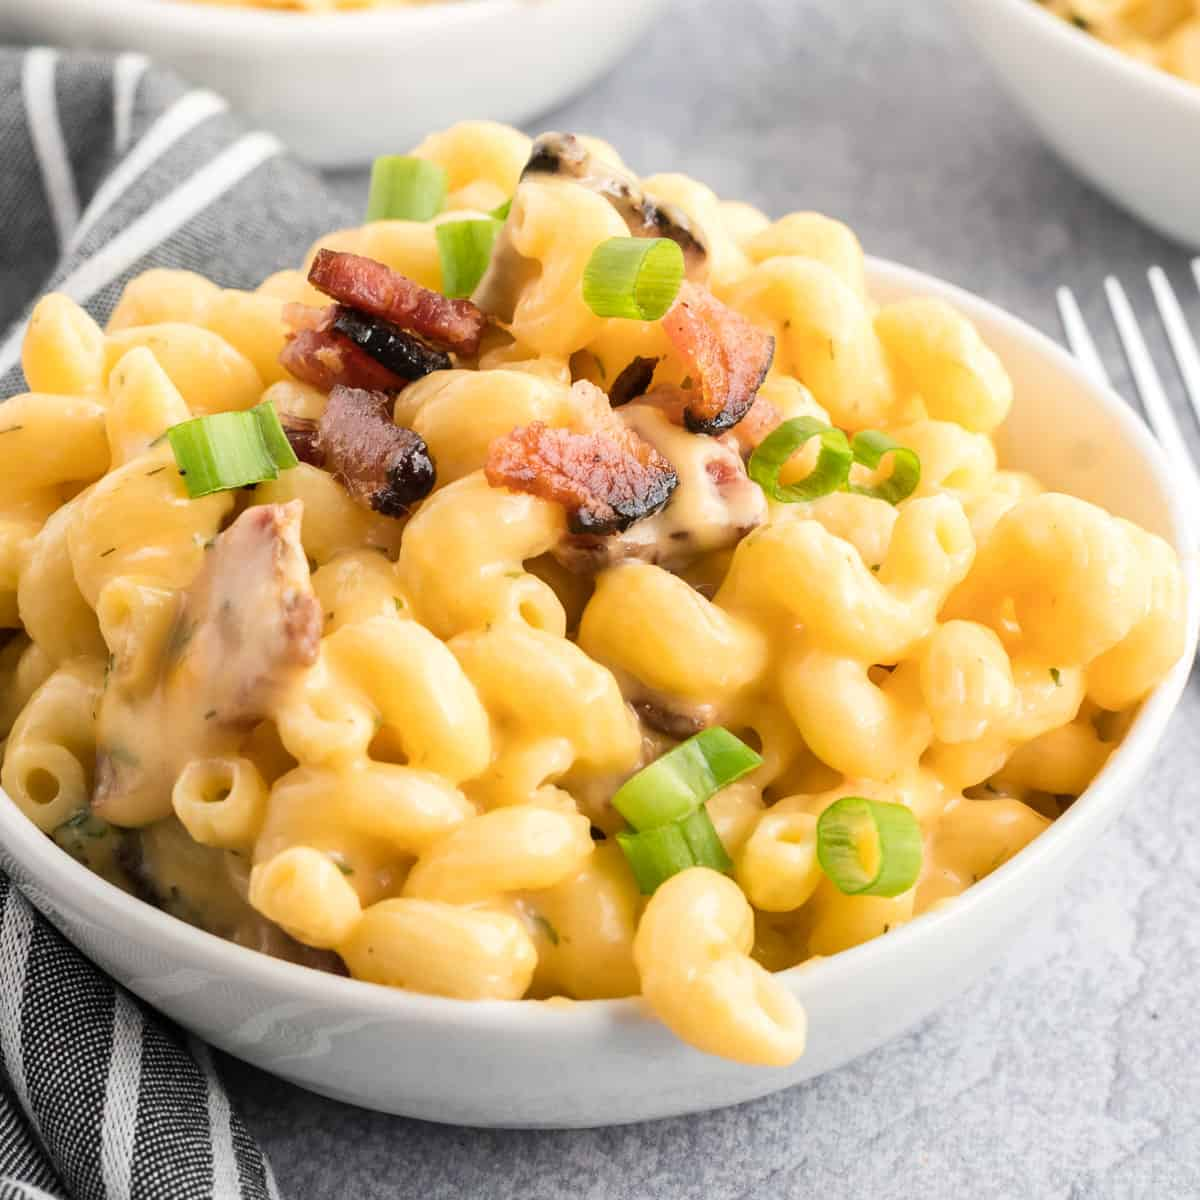 Macaroni and cheese with bacon garnished with green onion.